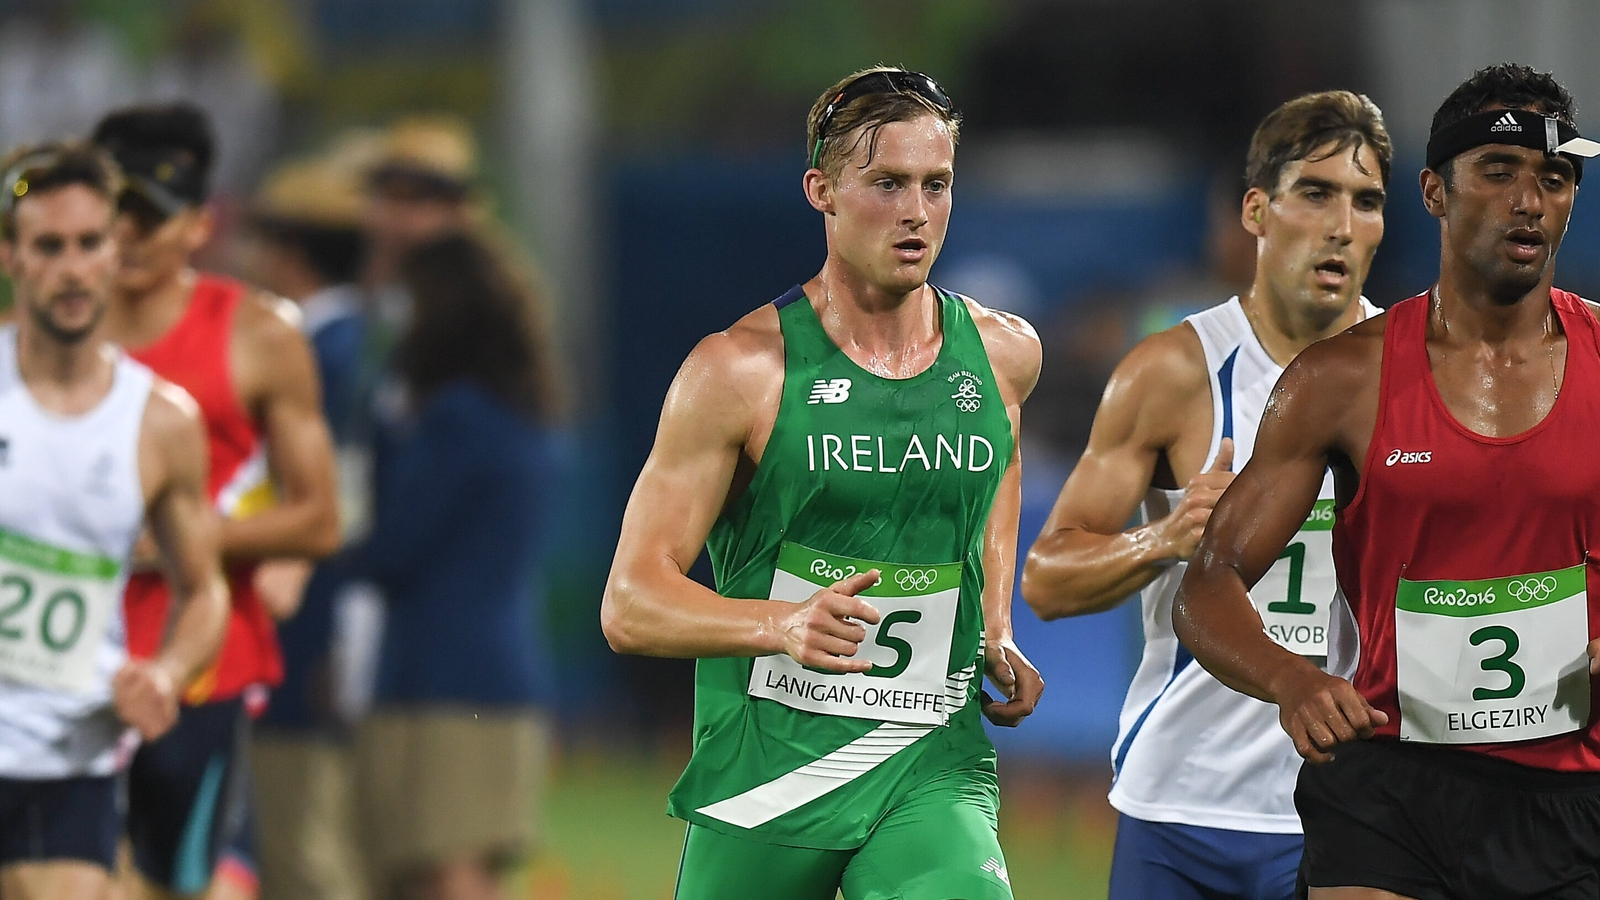 Lanigan-O'Keeffe withdraws as Olympic chances fade